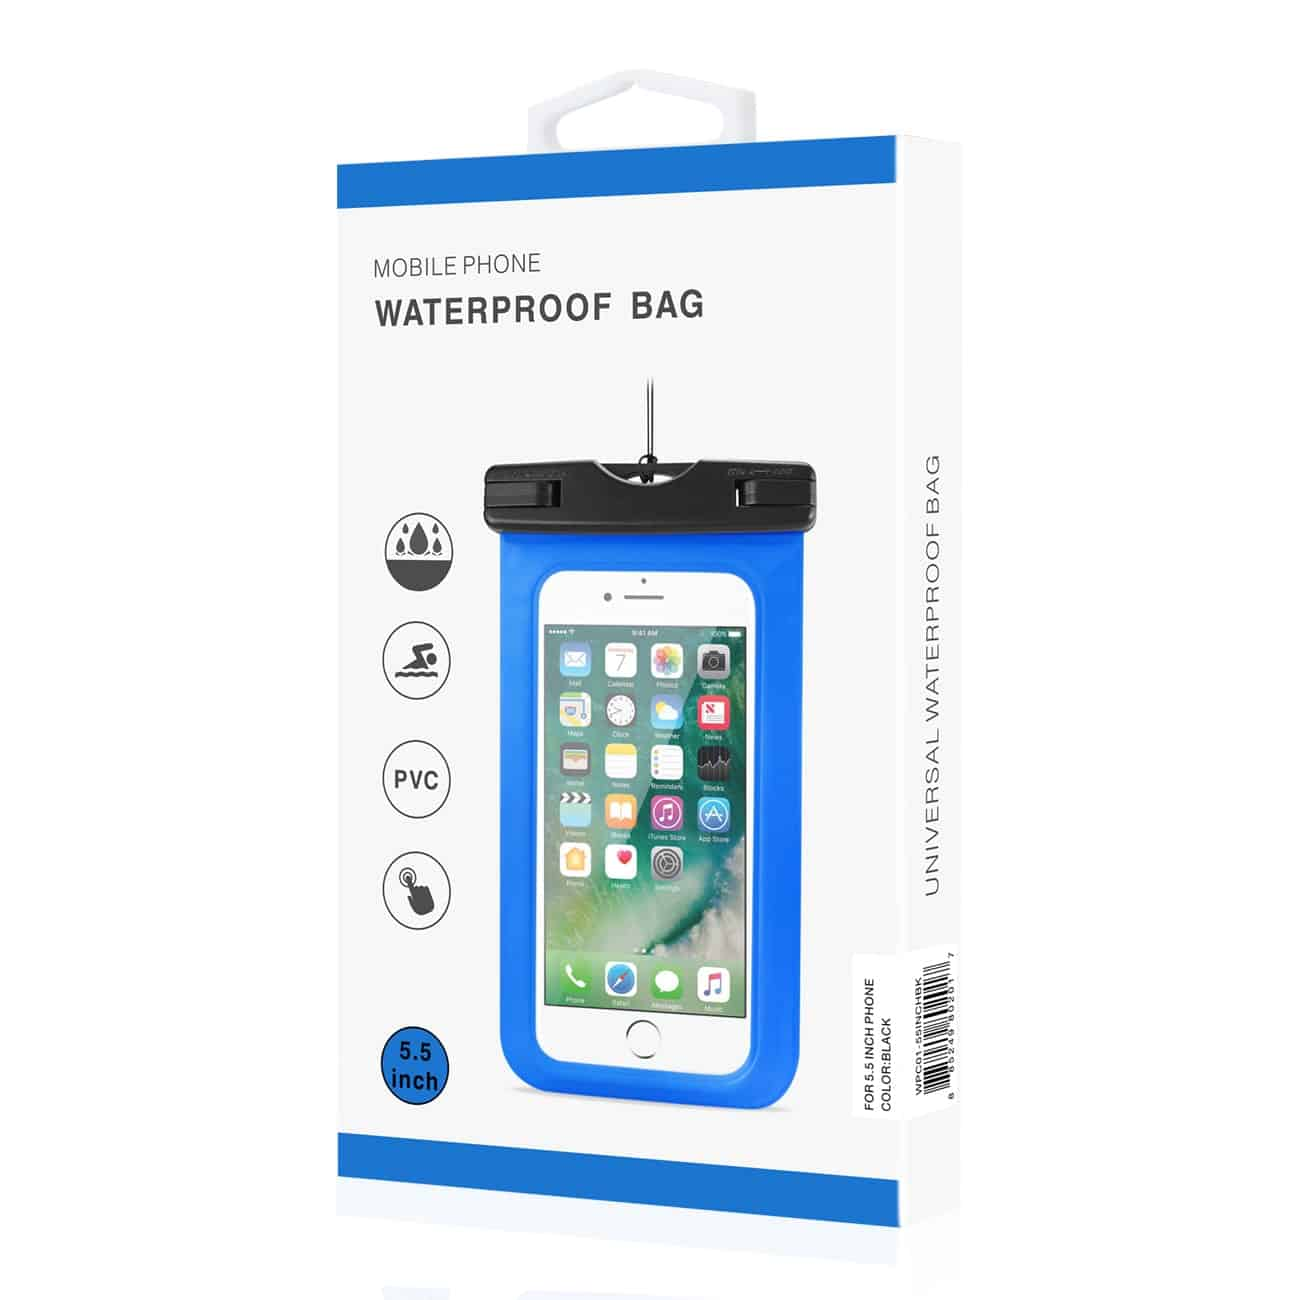 WATERPROOF CASE FOR IPHONE 6 PLUS/ 6S PLUS/ 7 PLUS OR 5.5 INCH DEVICES WITH WRIST STRAP IN BLACK